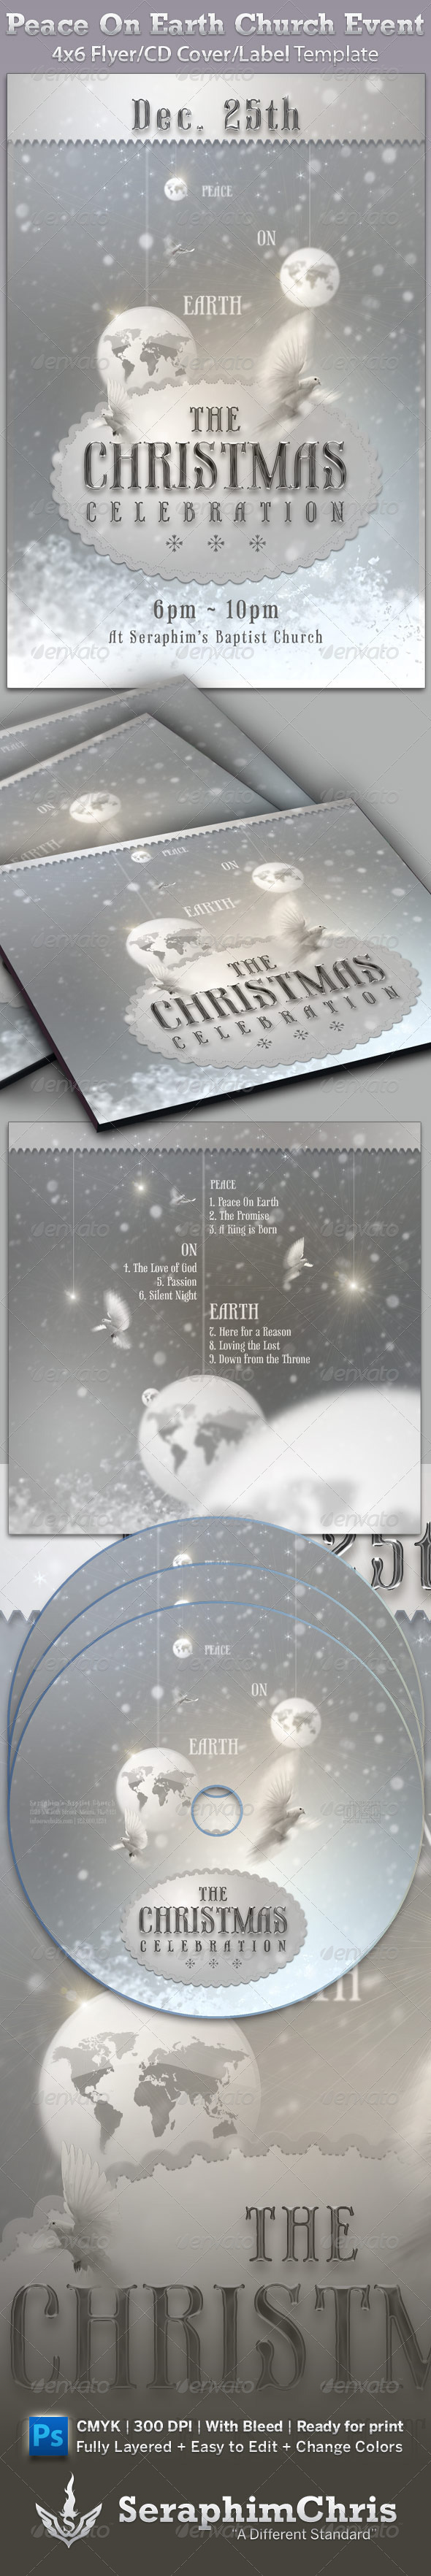 GraphicRiver Peace On Earth Christmas Church Event Flyer and CD 1028337